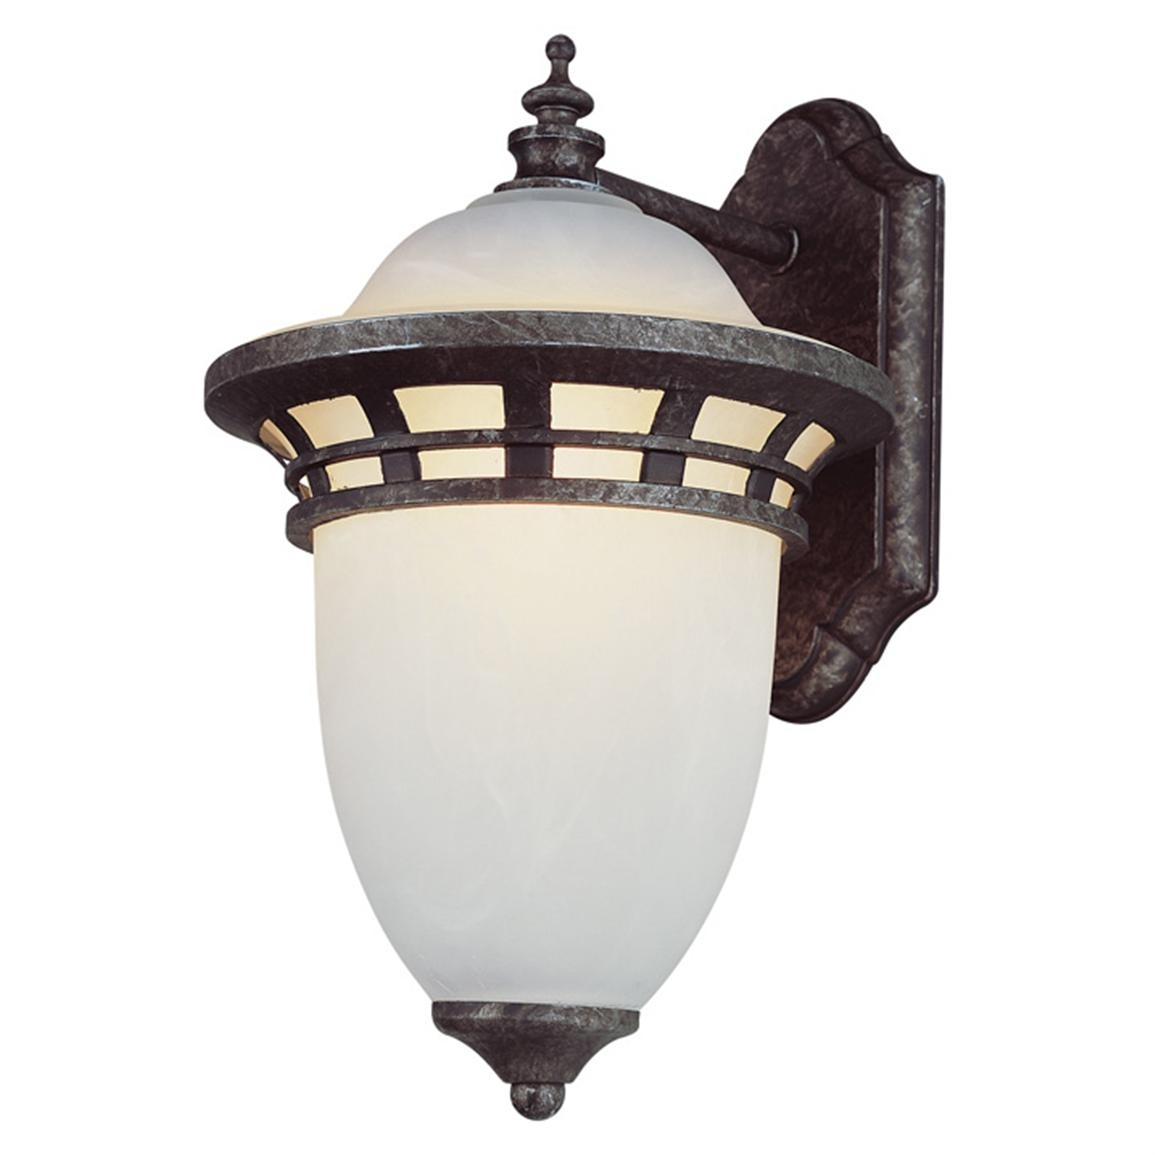 Trans Globe Lighting 1 – Light Outdoor Antique Wall Lantern – 173599 Inside Outdoor Wall Mounted Globe Lights (#14 of 15)